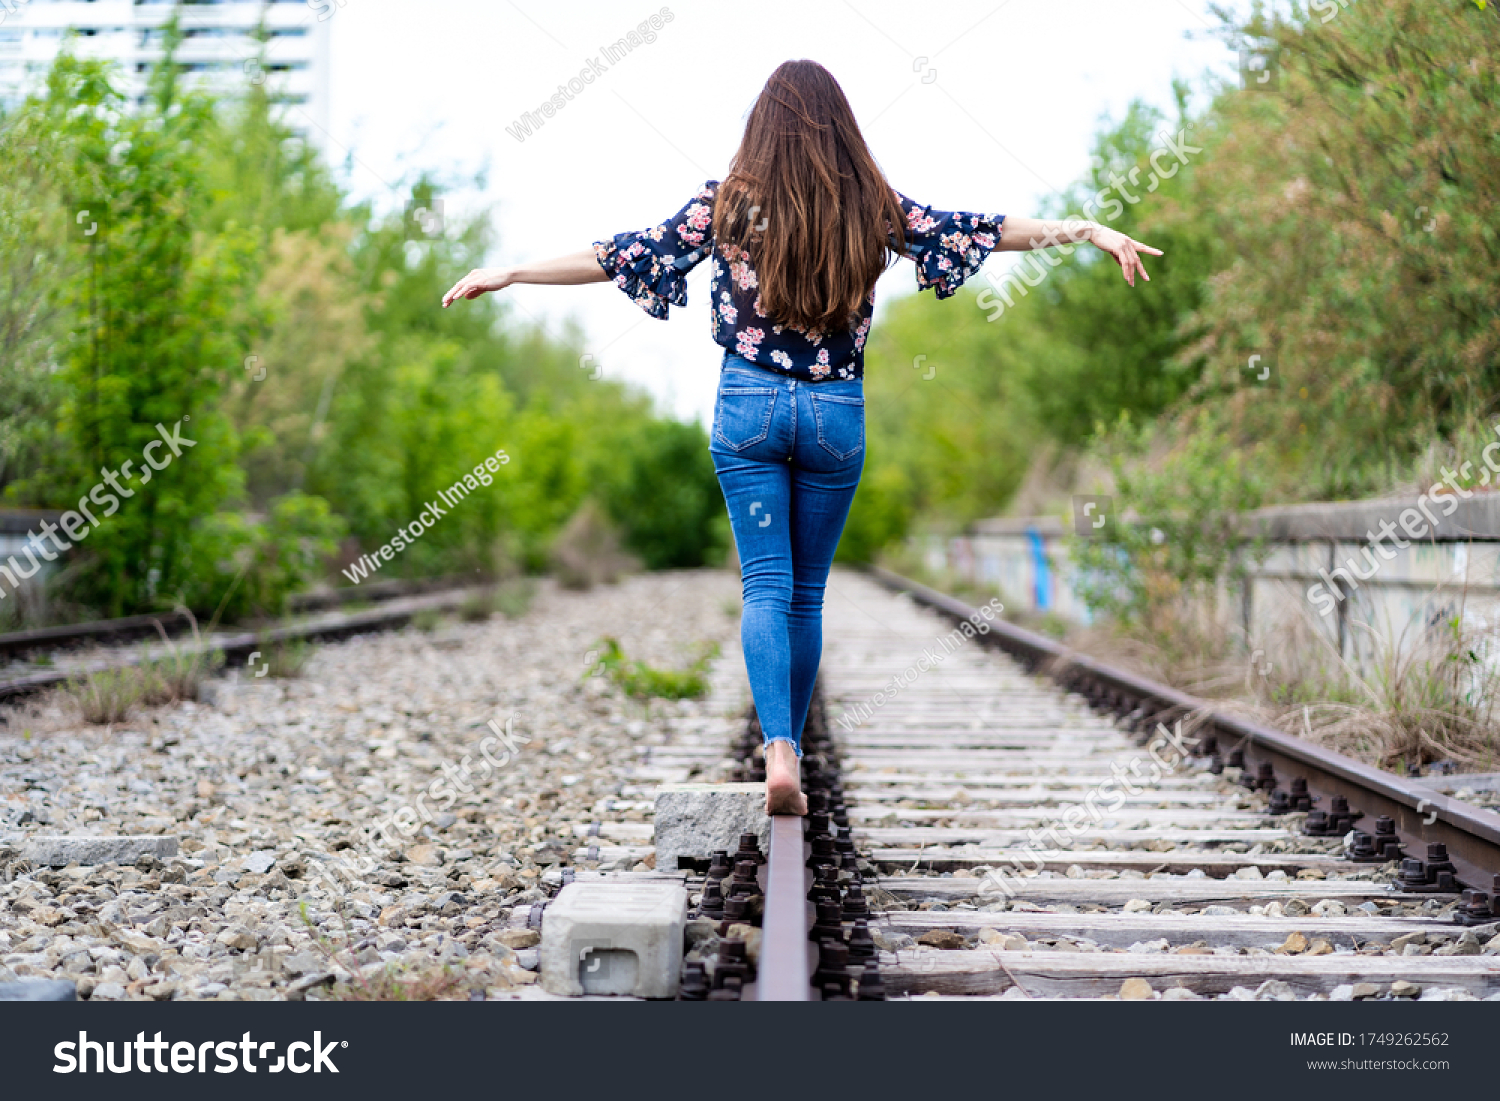 https://image.shutterstock.com/shutterstock/photos/1749262562/display_1500/stock-photo-the-back-of-a-young-female-walking-through-the-train-rails-barefoot-and-trying-to-hold-the-balance-1749262562.jpg